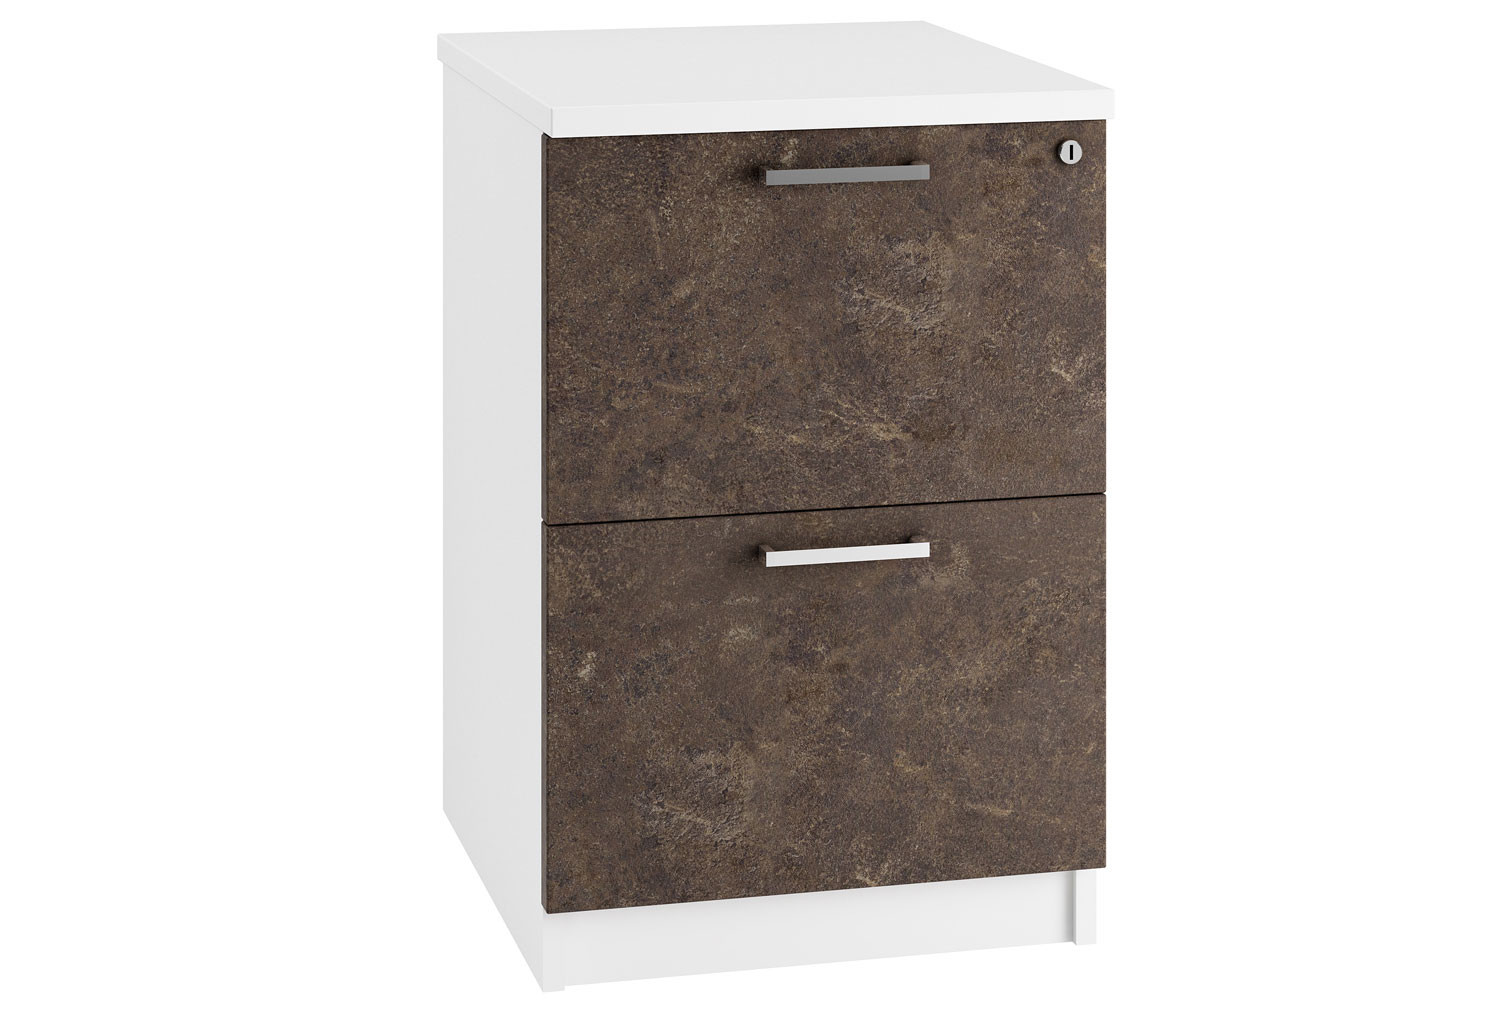 Next-Day Lasso 2 Drawer Filing Cabinet (Pitted Steel)